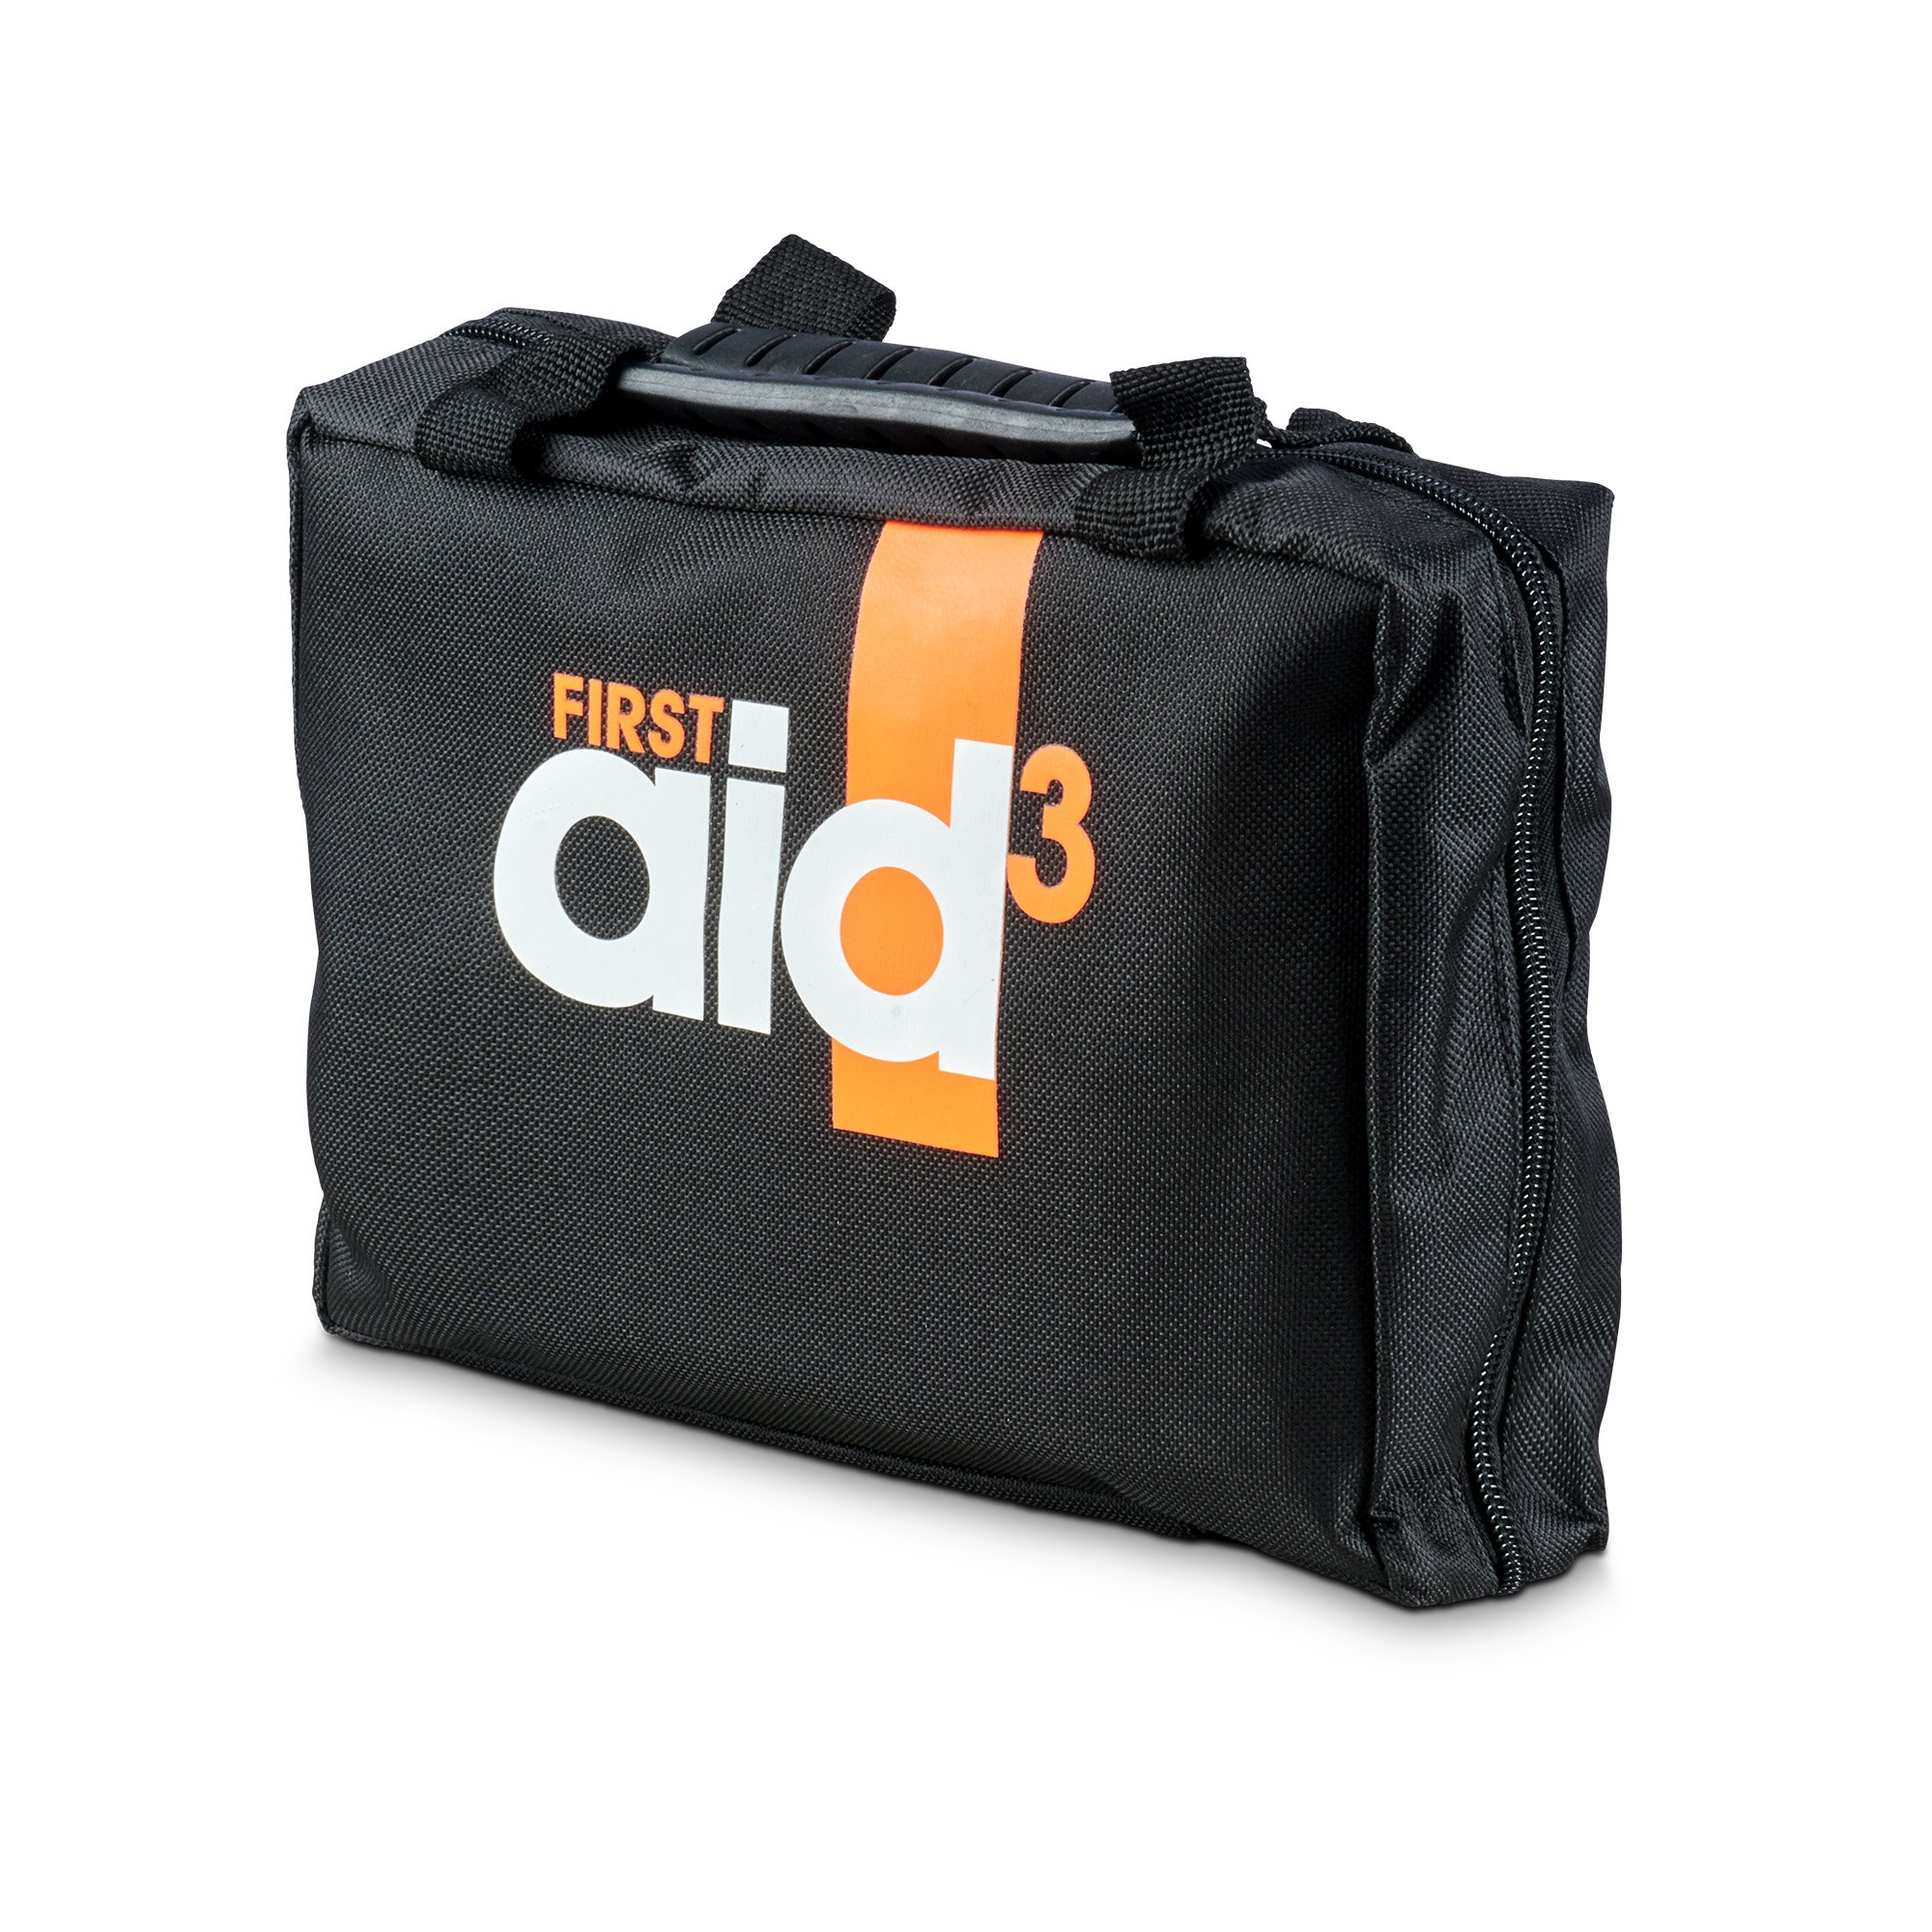 D3 FIRST AID KIT (66 piece)